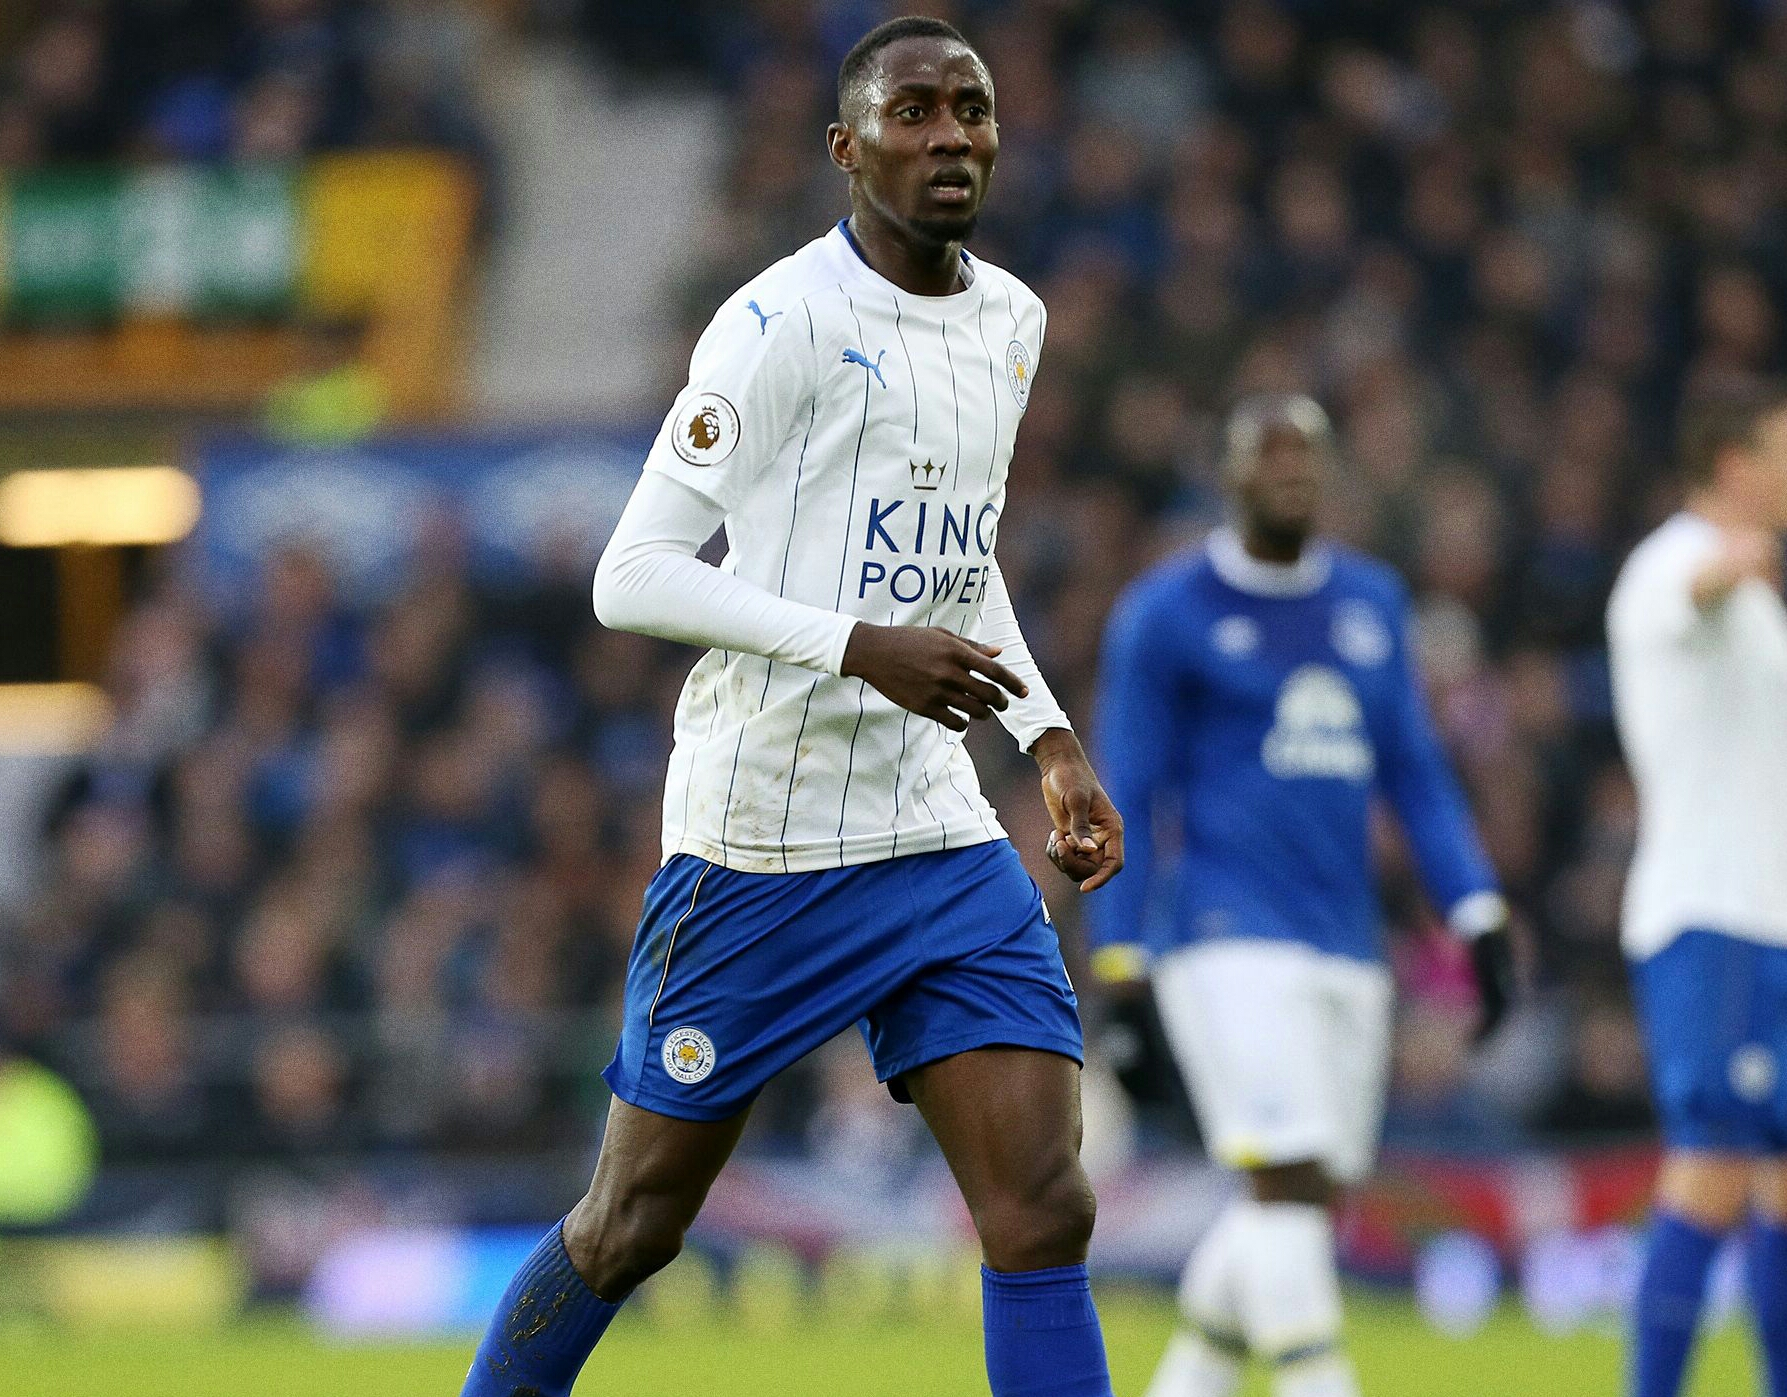 Leicester's Ndidi Set For EPL Debut Against Chelsea